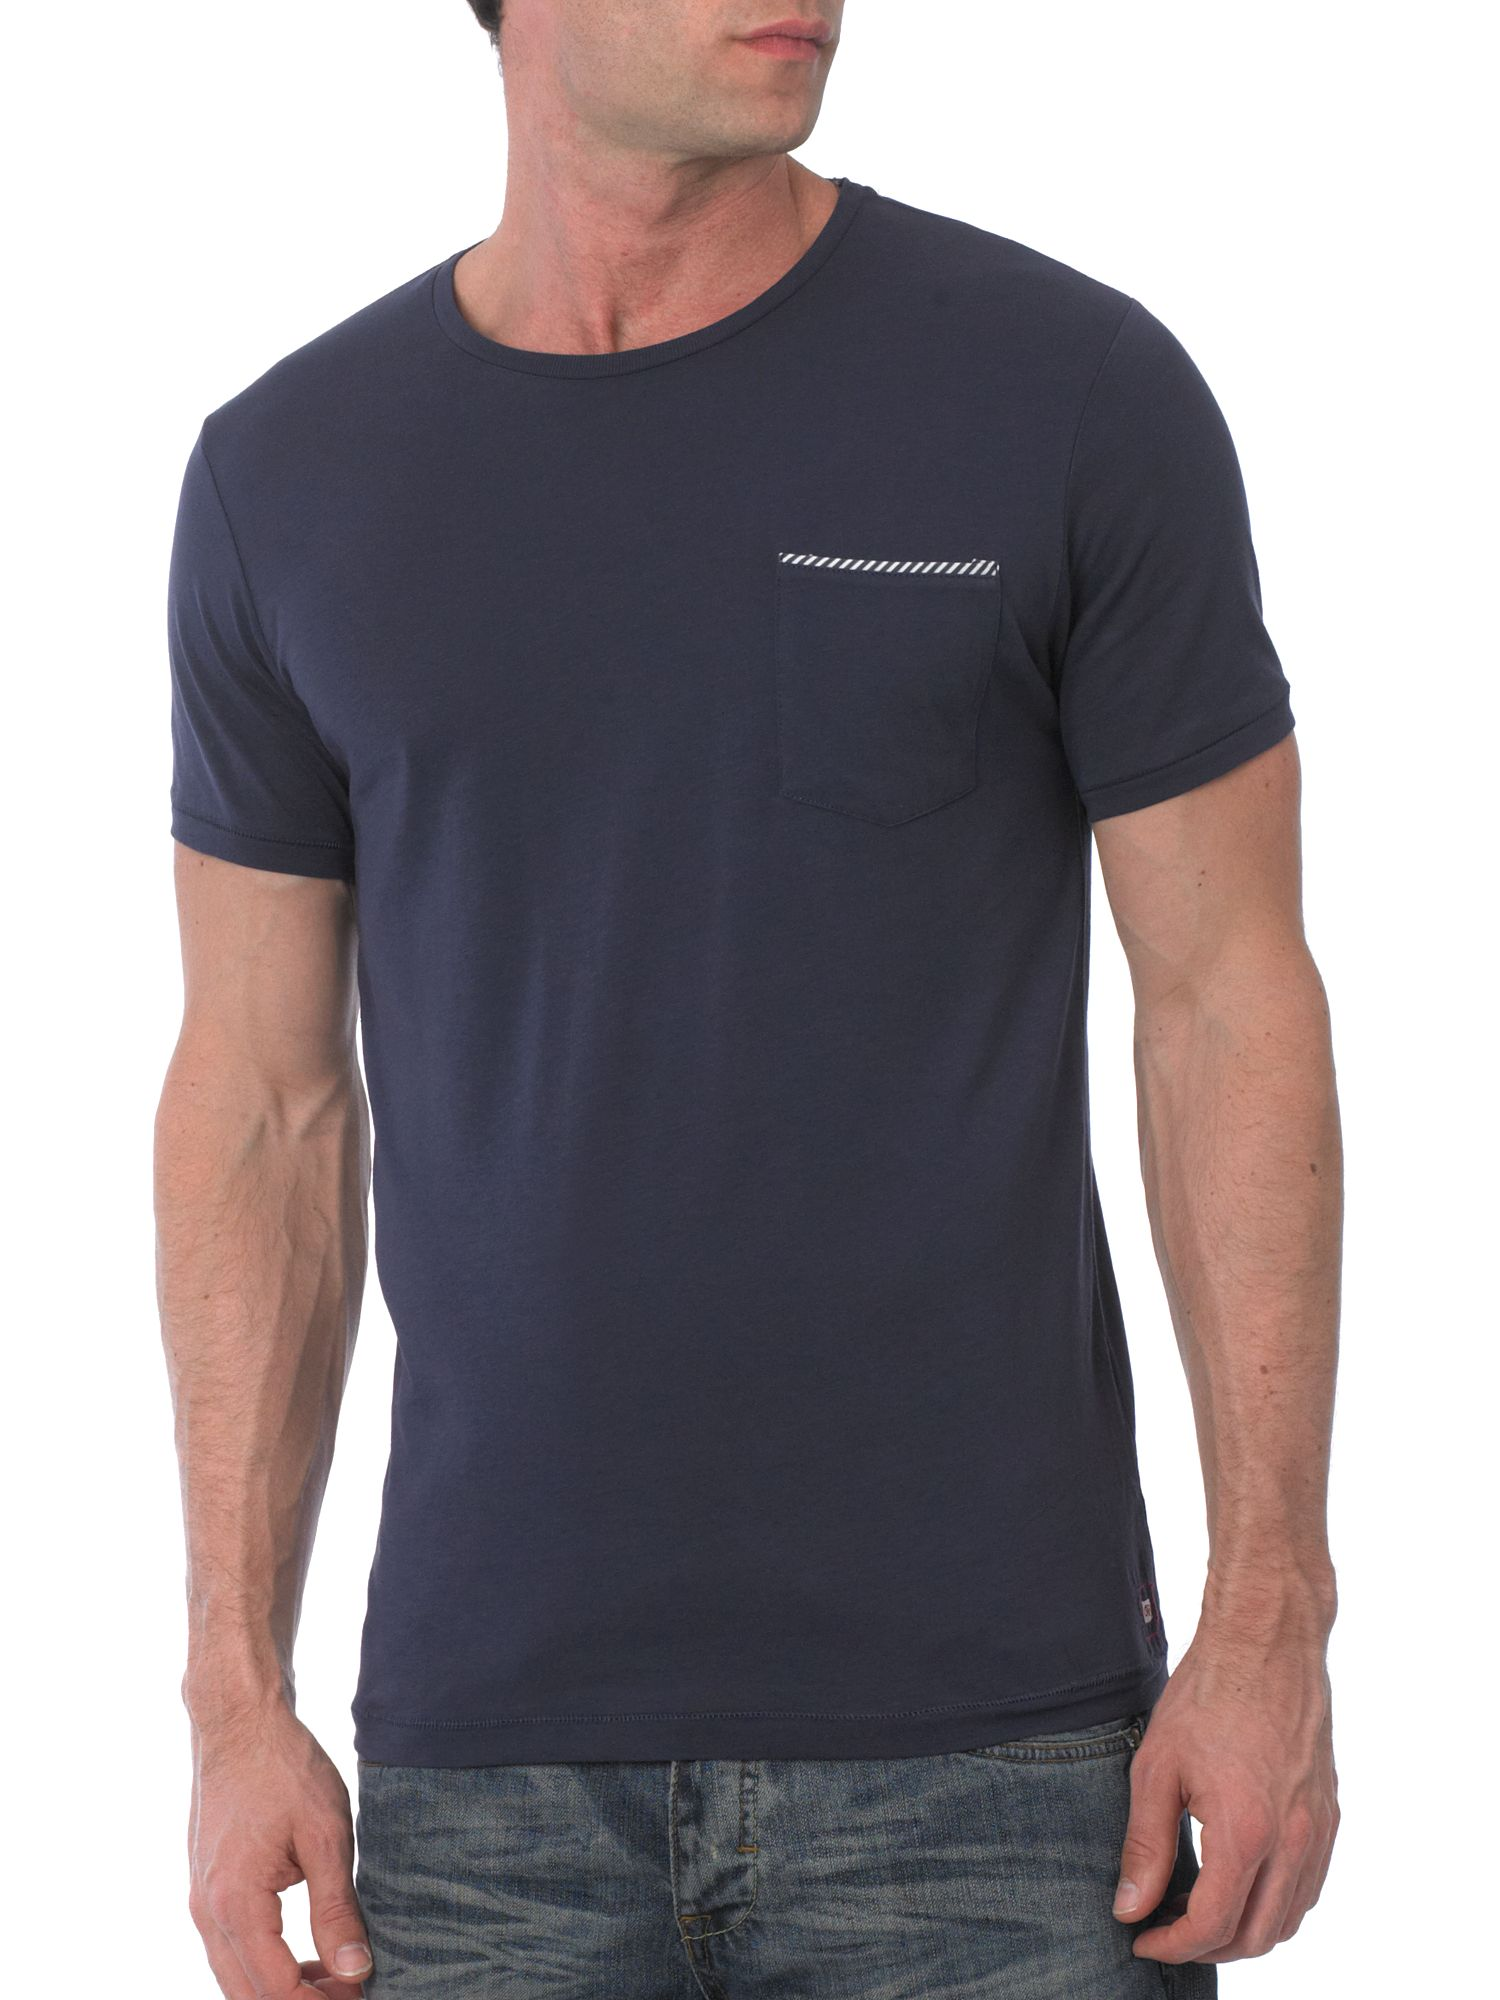 Selected Short sleeve tipped pocket T-shirt Blueberry product image